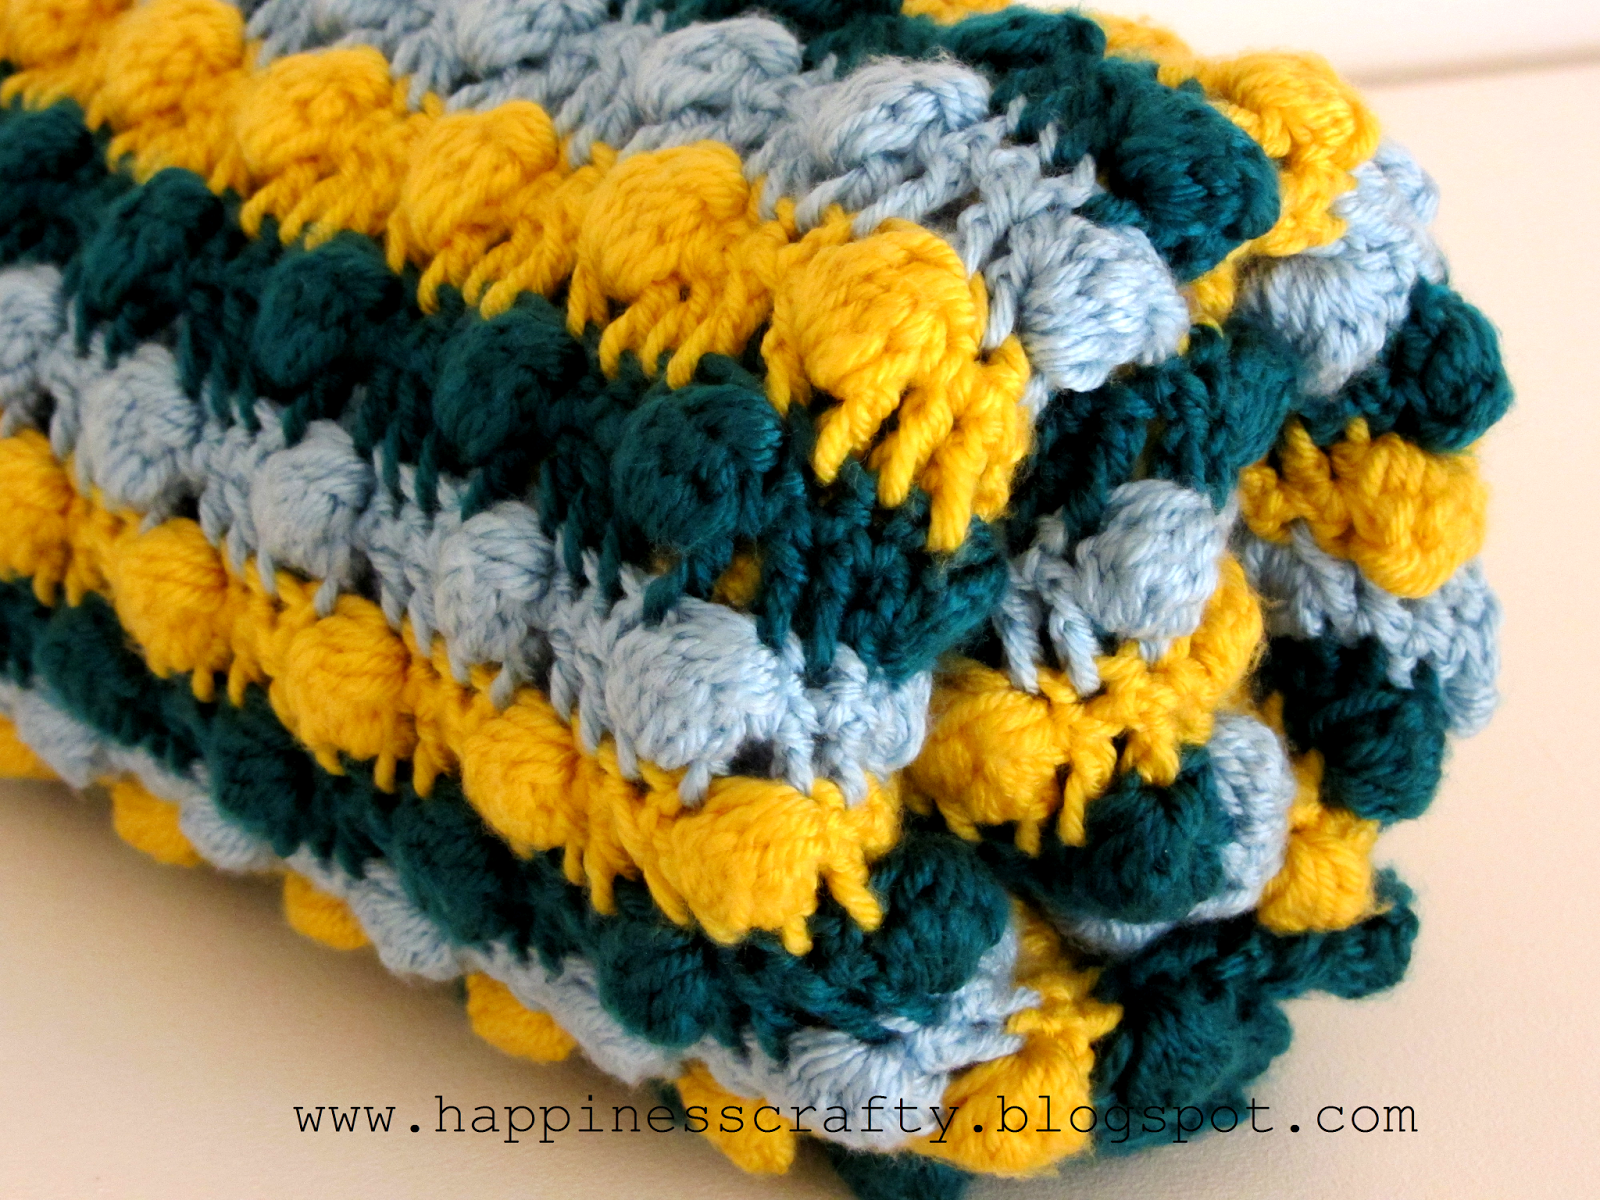 19 crocheted baby blankets to warm up those little feet bobble diy crochet blankets bankloansurffo Choice Image